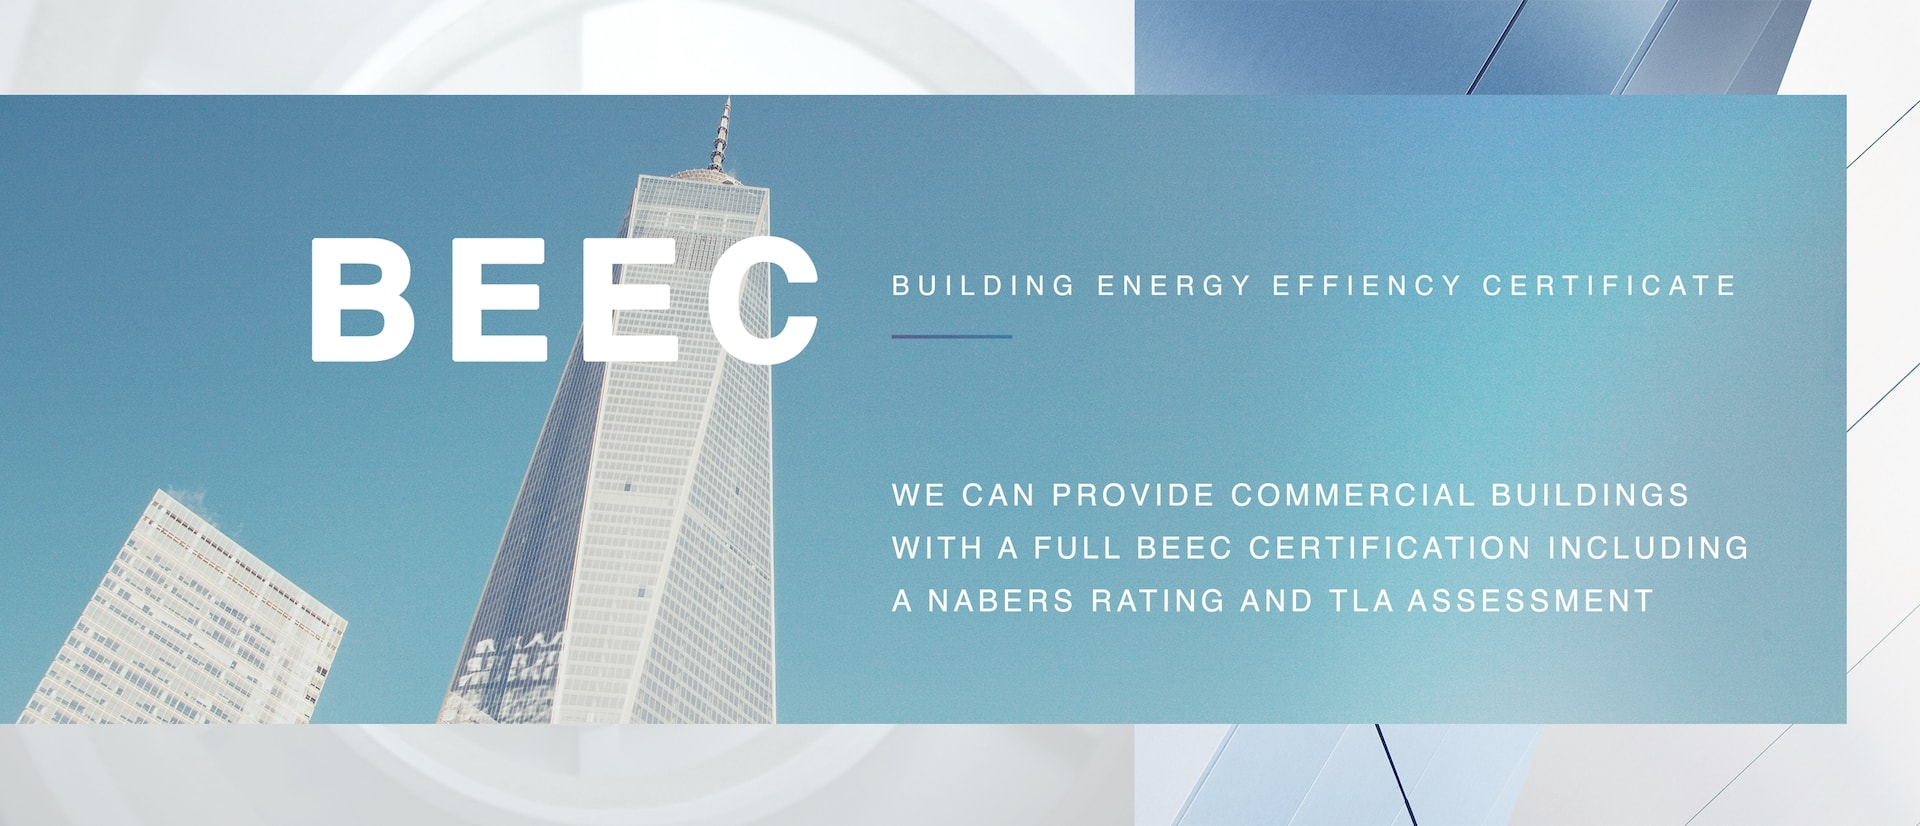 Building Energy Efficiency Certificate